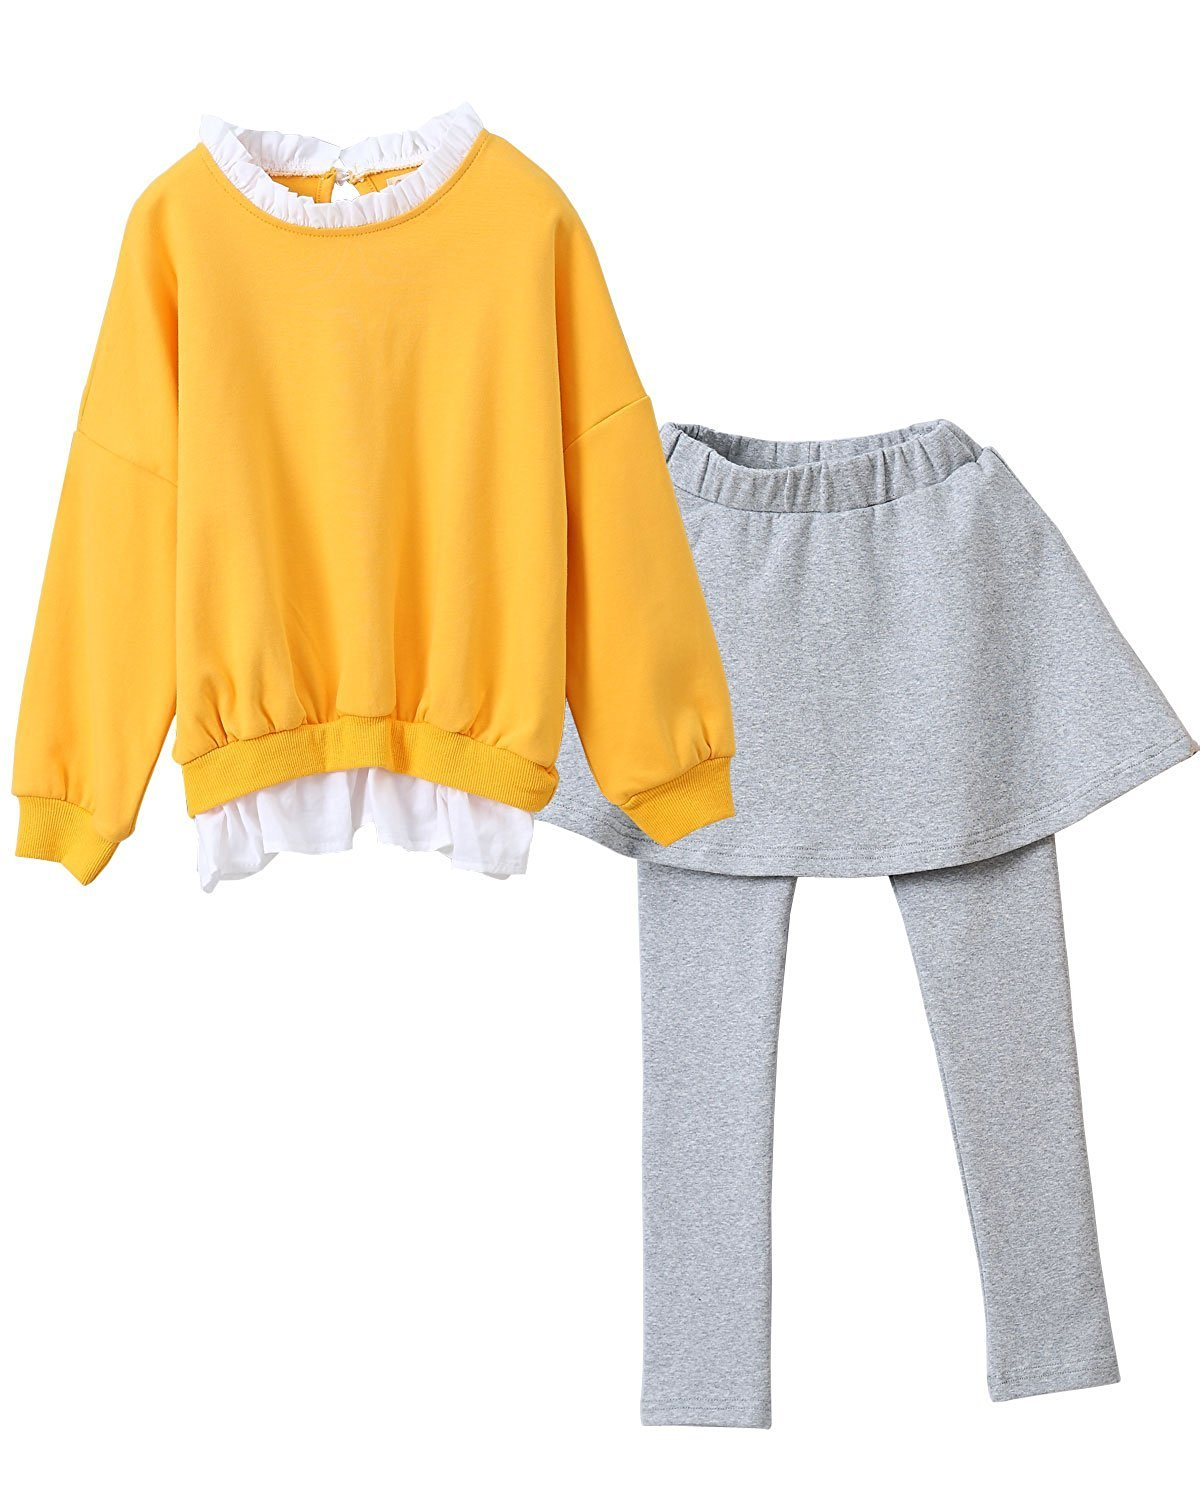 WAYNE FINKELSTEIN Little Girls Cute Long Sleeve Top & Pant Clothes Set Yellow Gray 5-6 Years